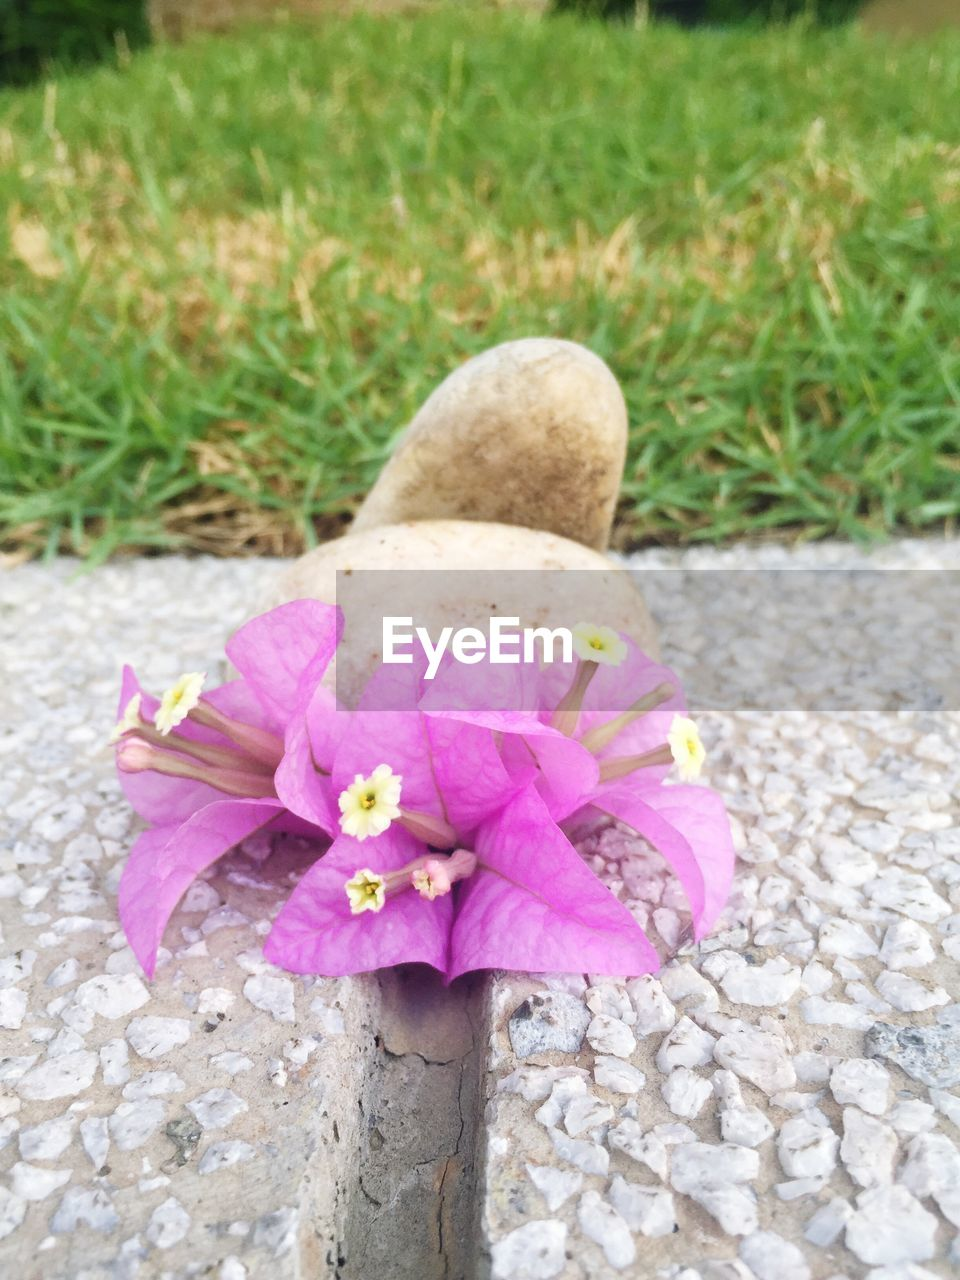 flower, nature, growth, petal, pink color, plant, no people, day, outdoors, grass, beauty in nature, close-up, fragility, flower head, blooming, freshness